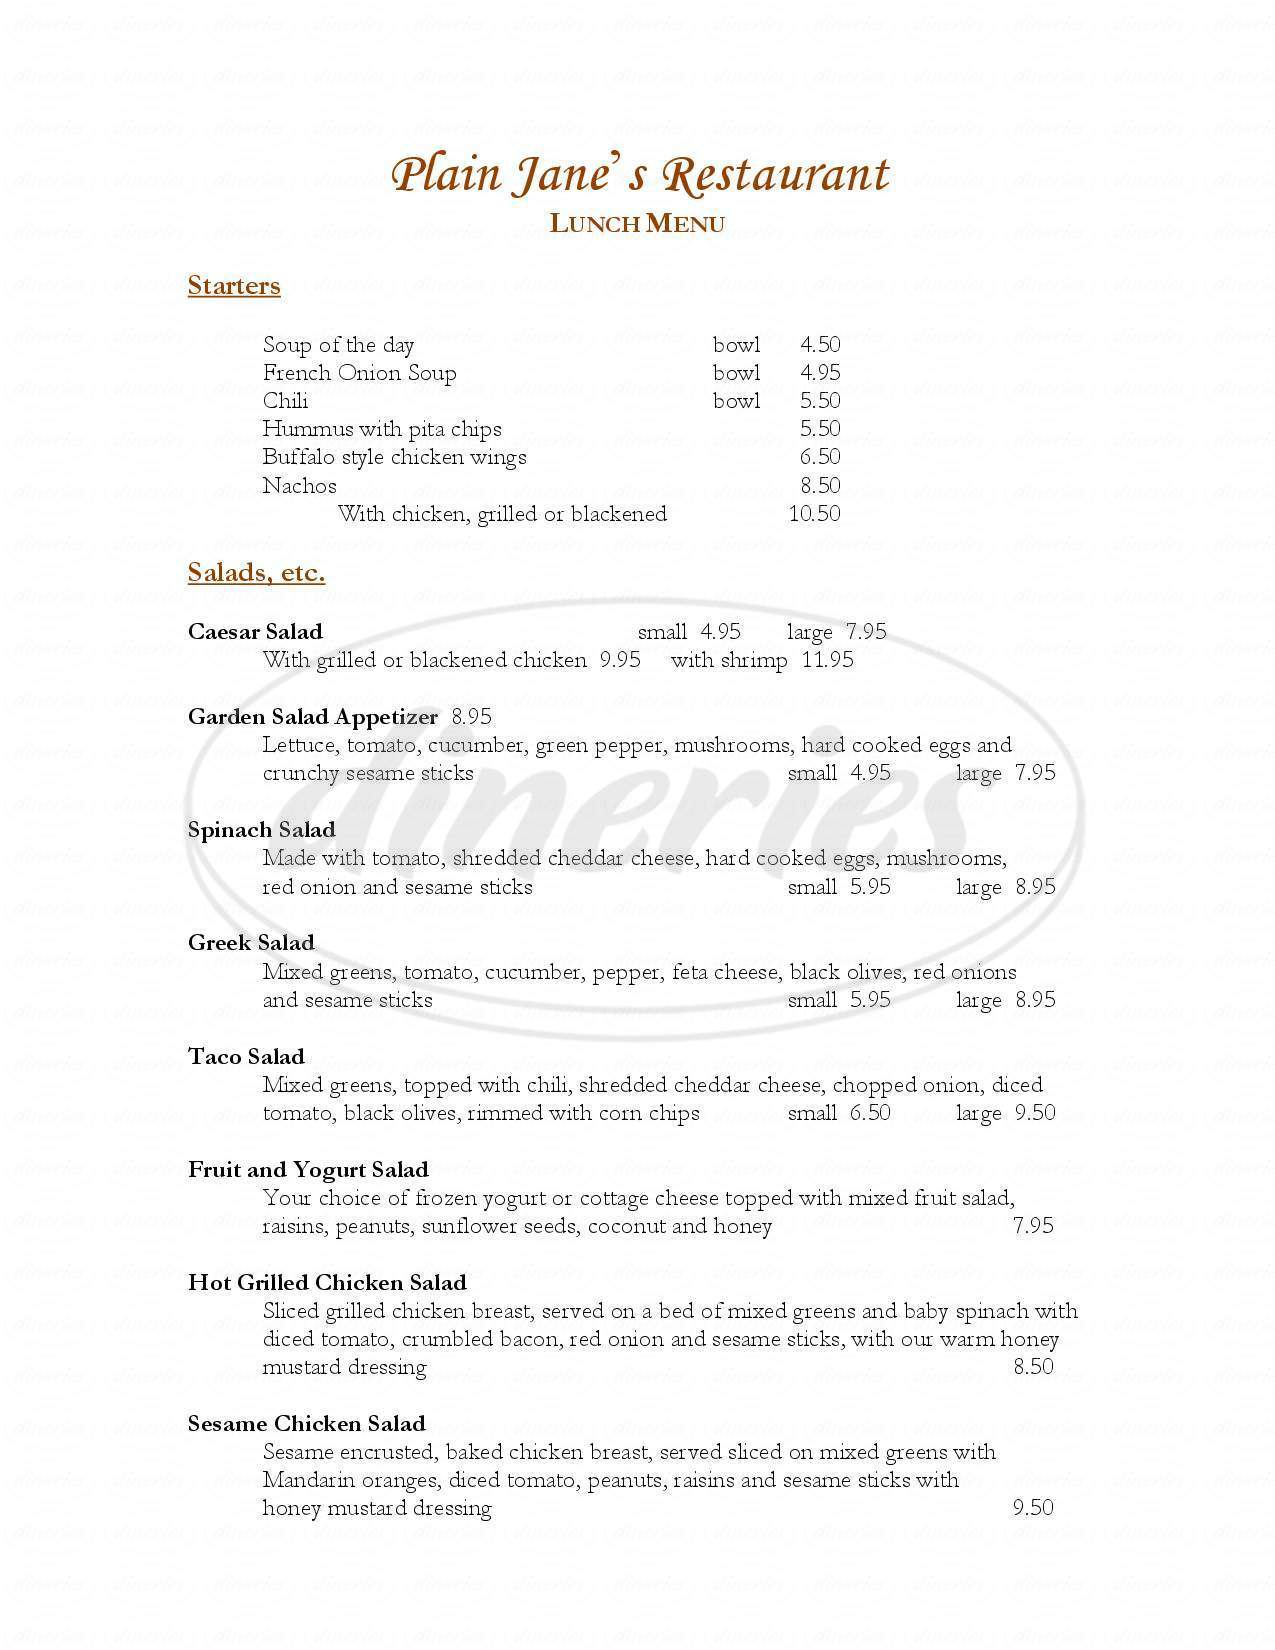 menu for Plain Jane's Restaurant